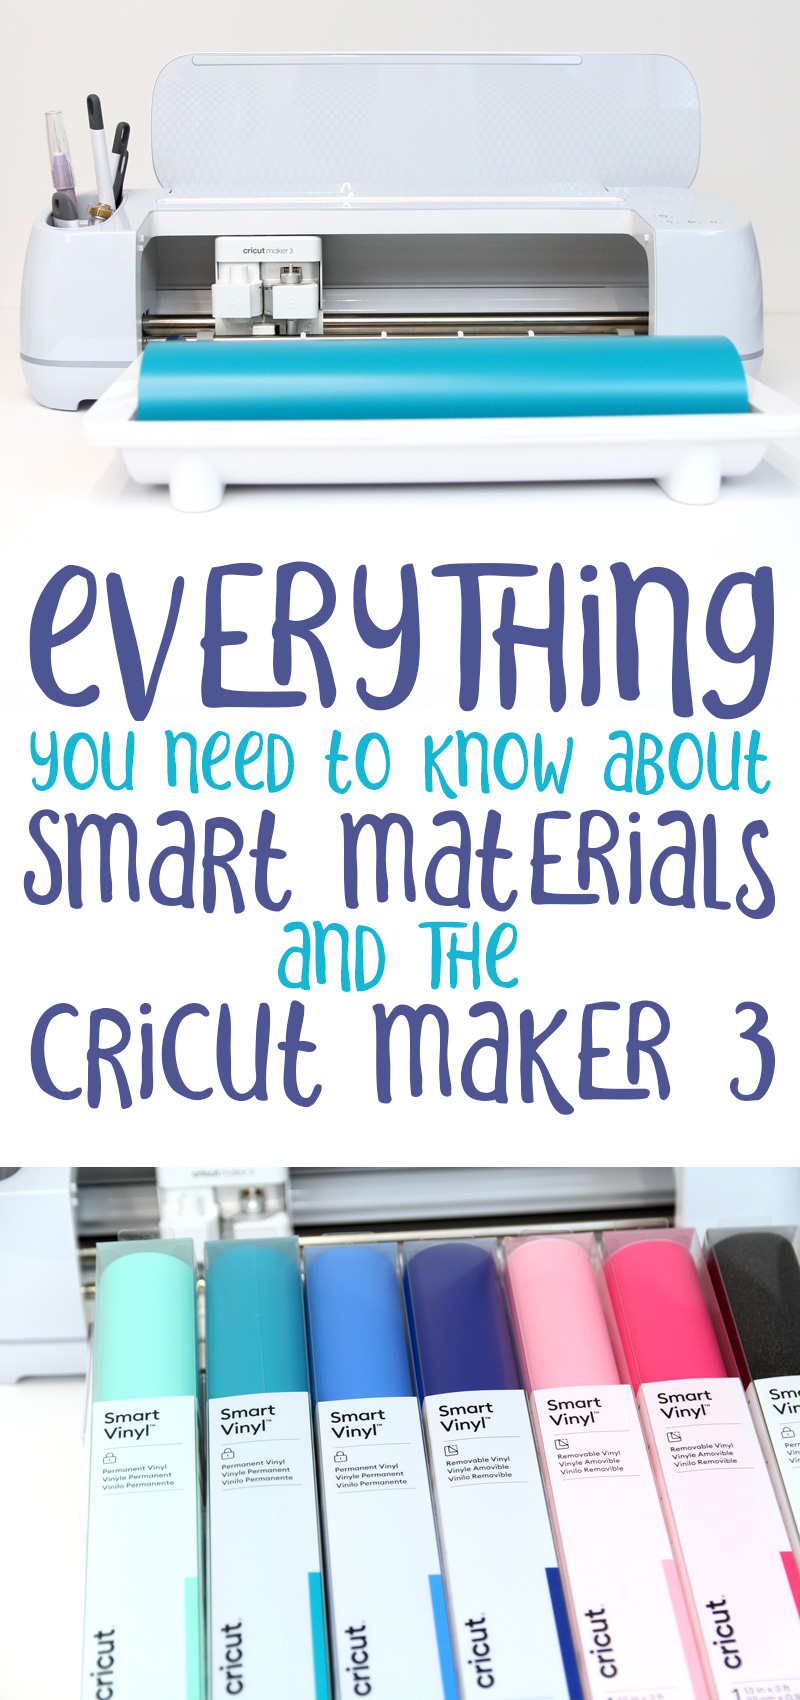 Cricut maker 3 review materials collage